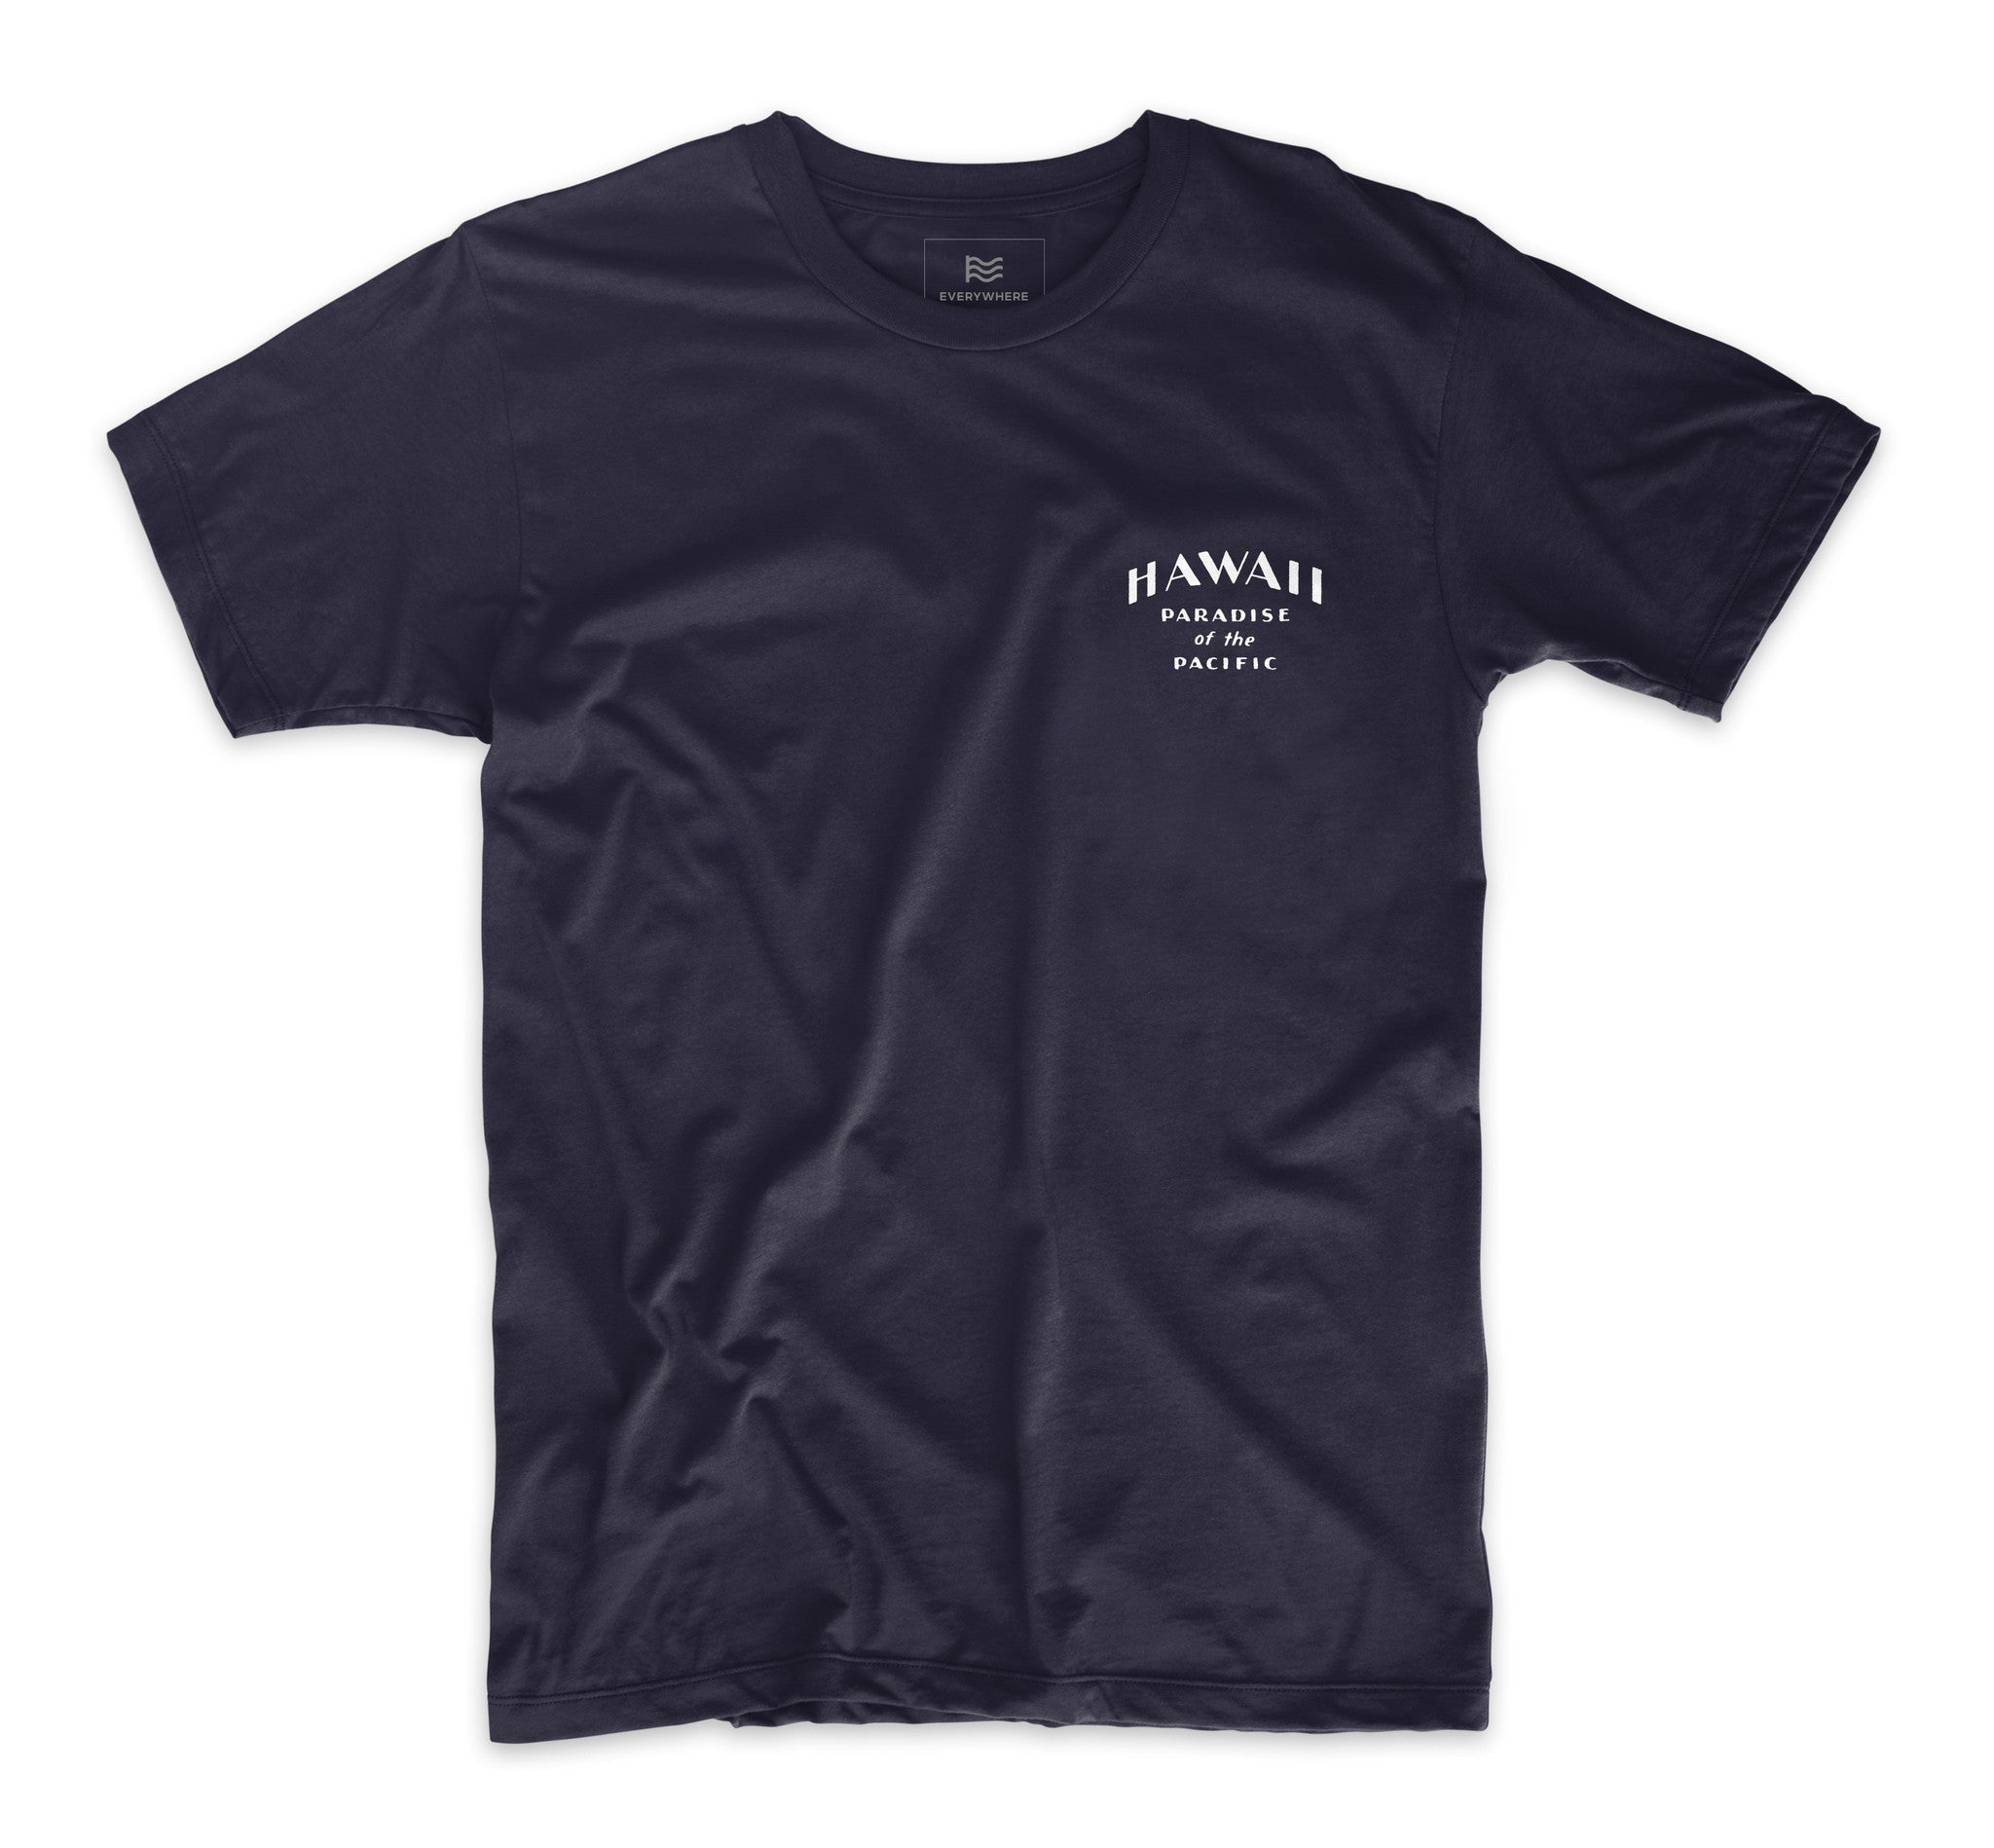 Hawaii - Paradise of the Pacific T-Shirt